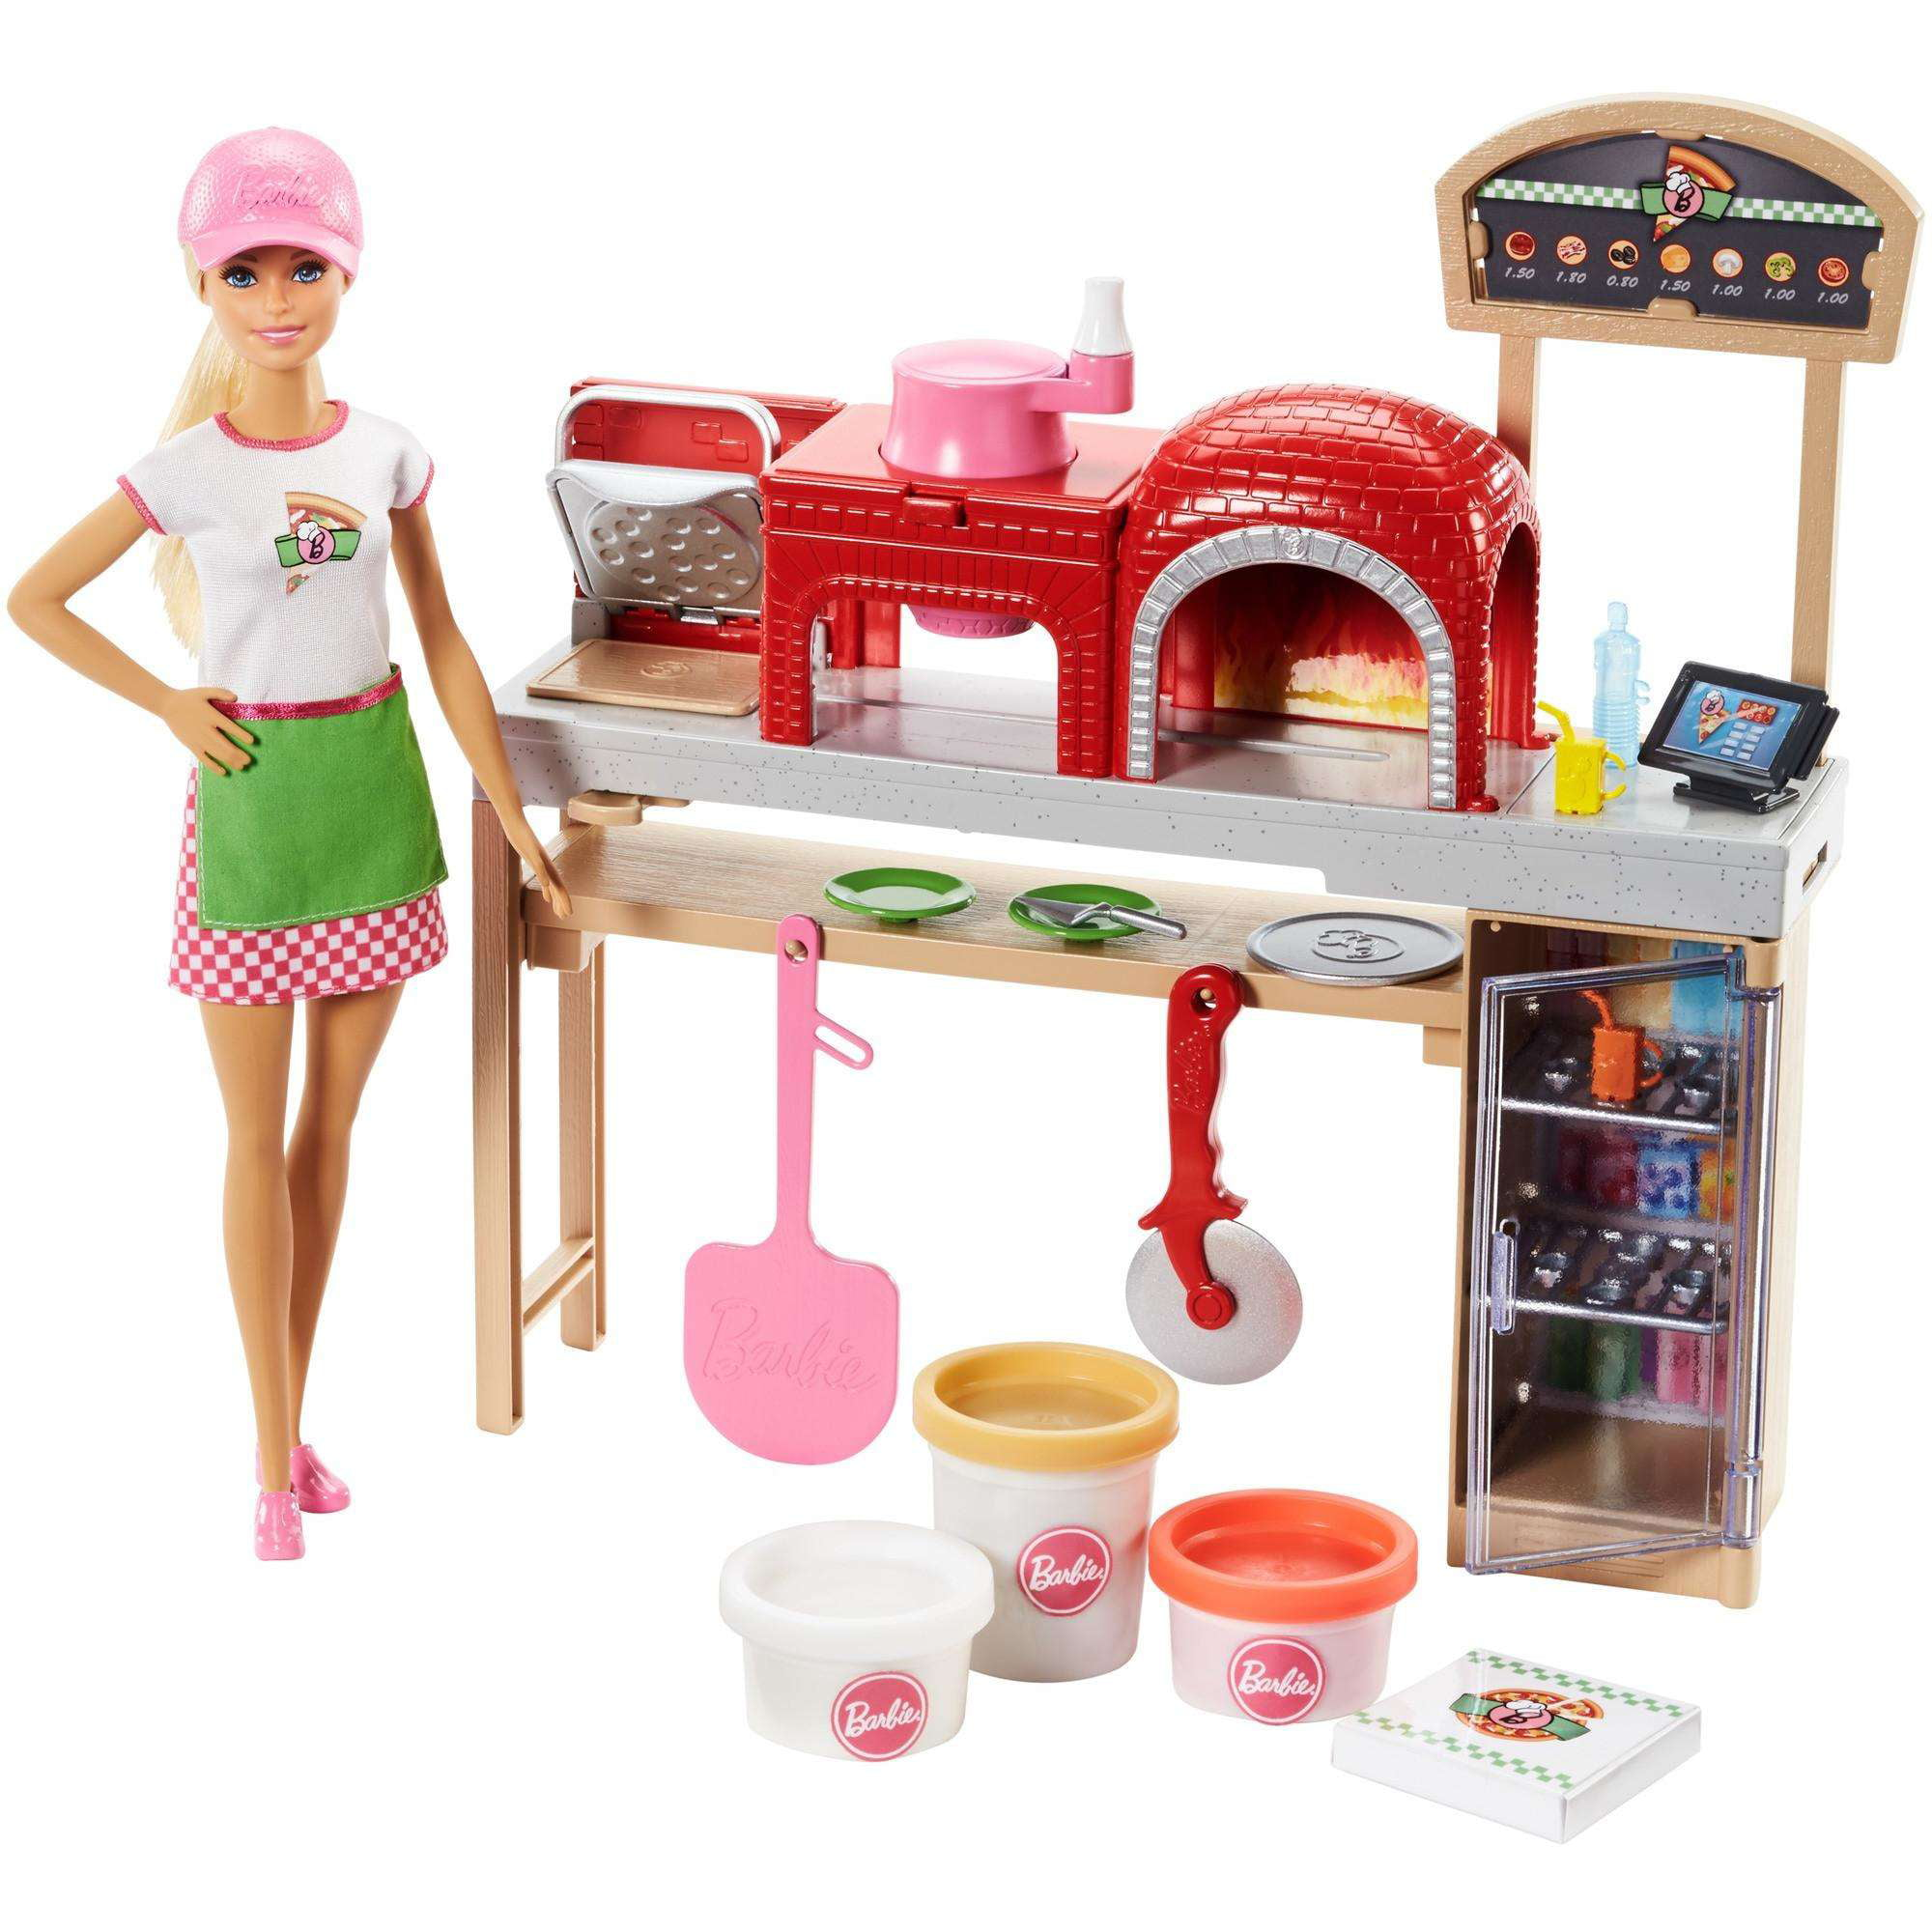 Barbie Pizza Chef Doll and Playset by Mattel